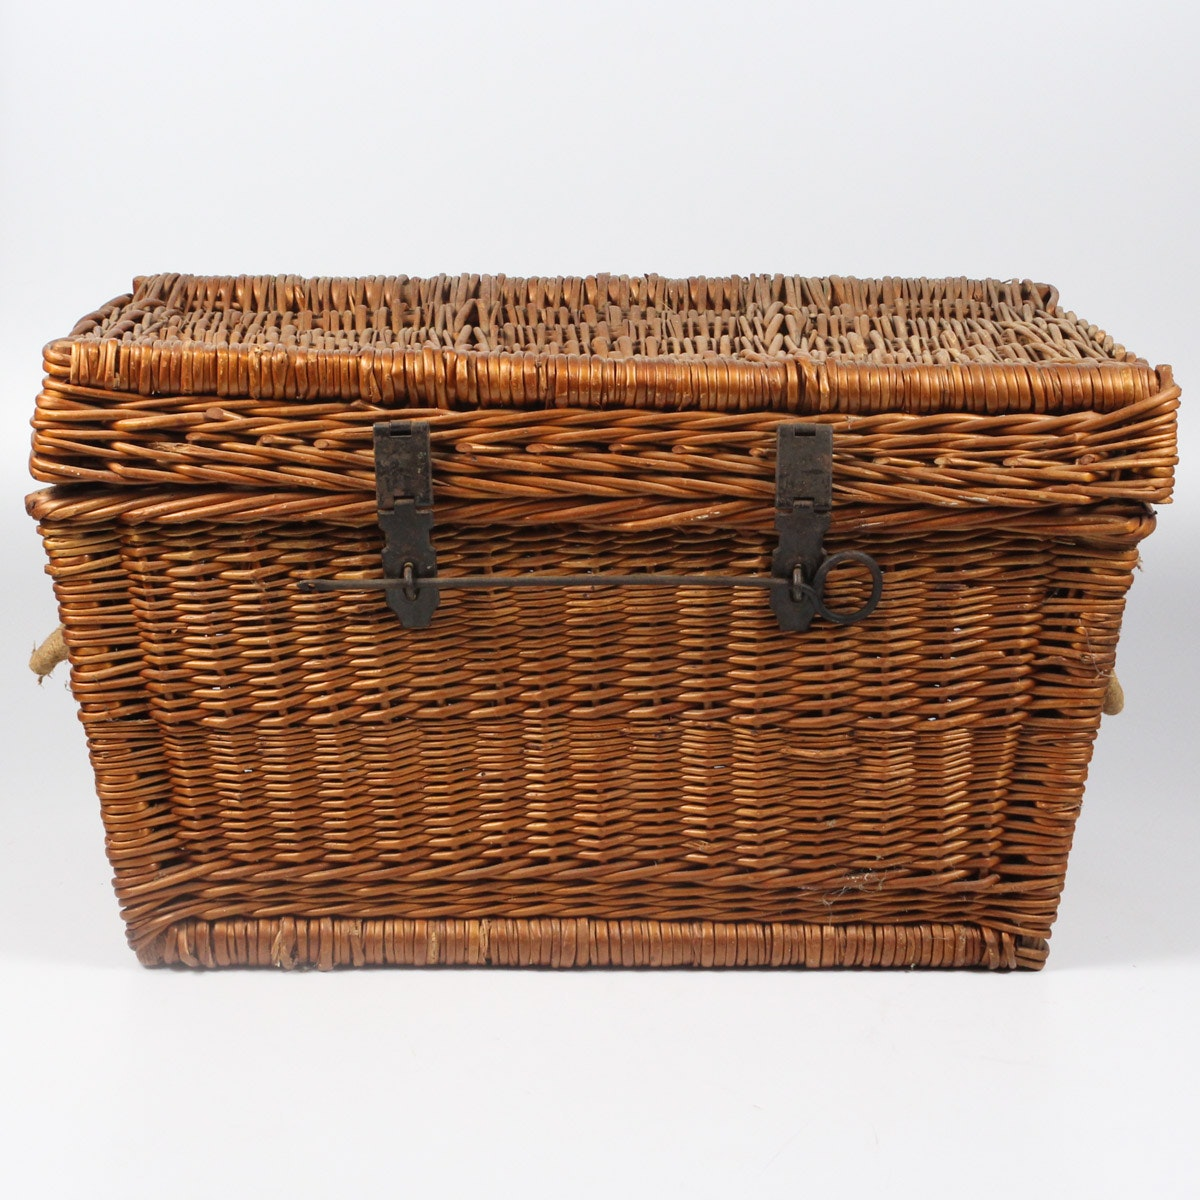 Wicker Cane Chest with Antique Locks